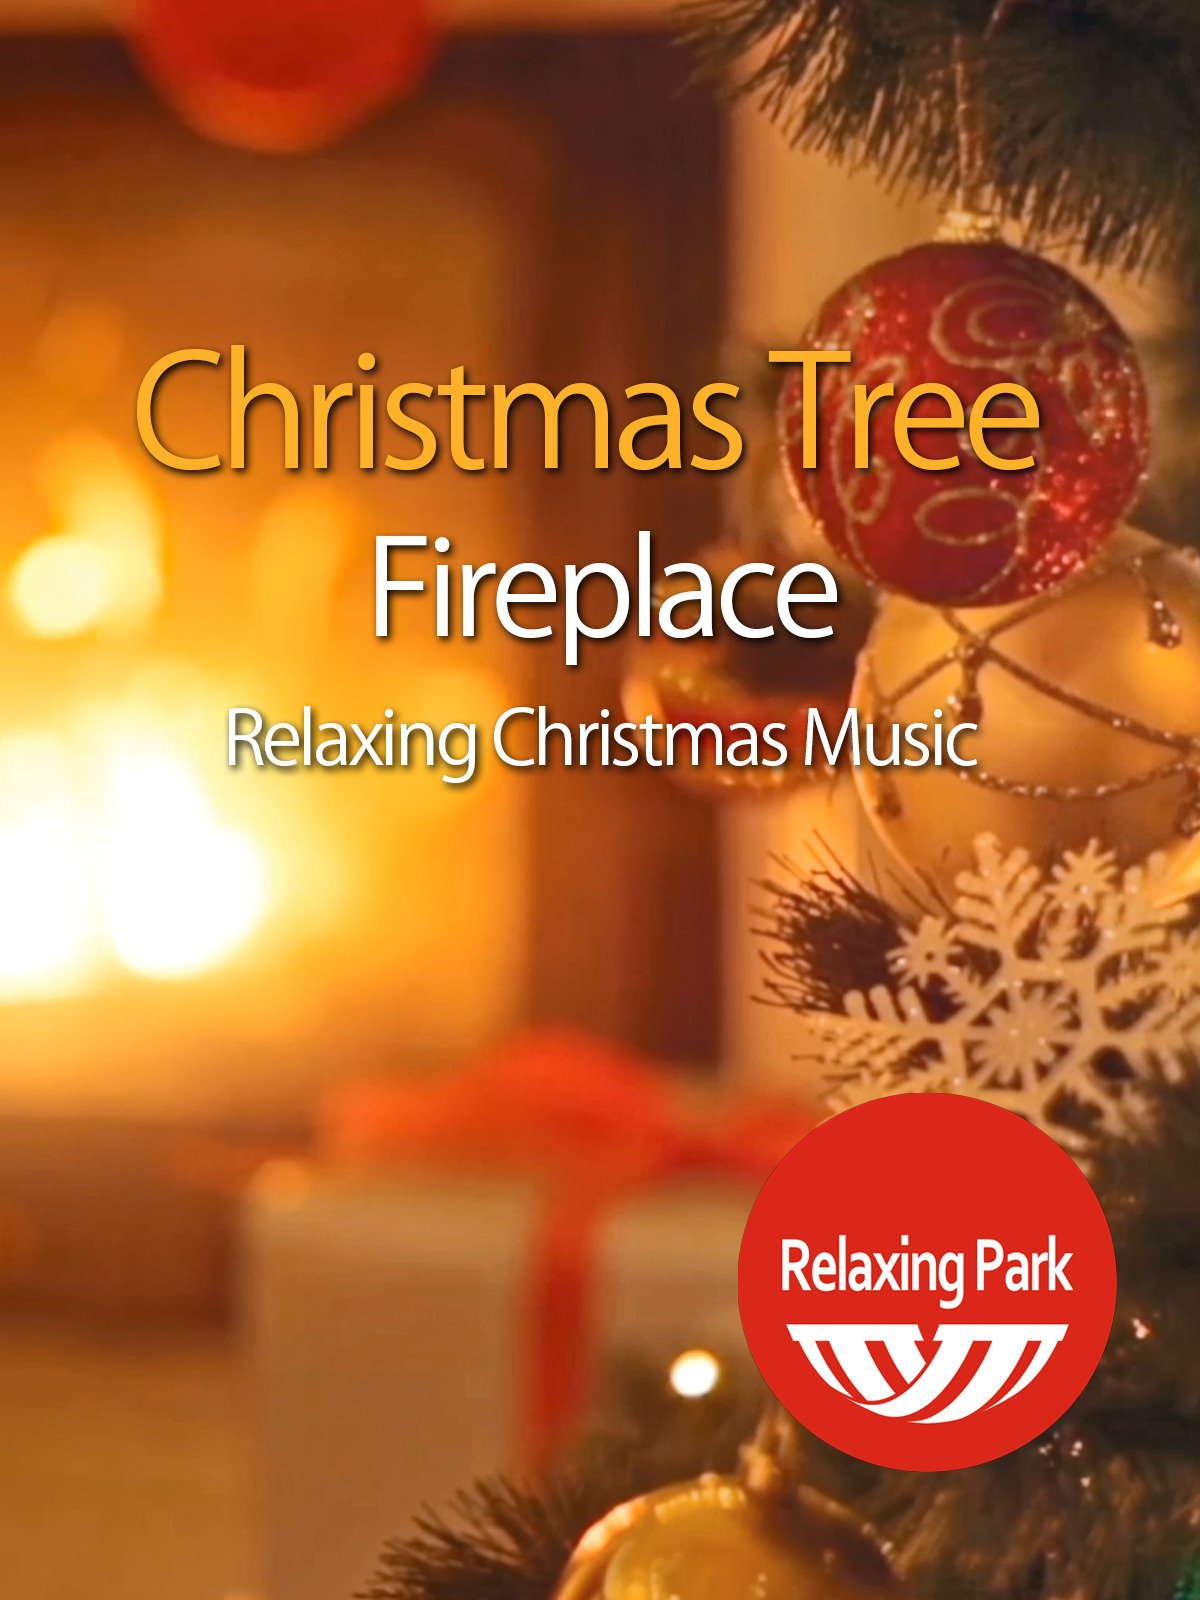 Christmas Tree Fireplace & Relaxing Christmas Music